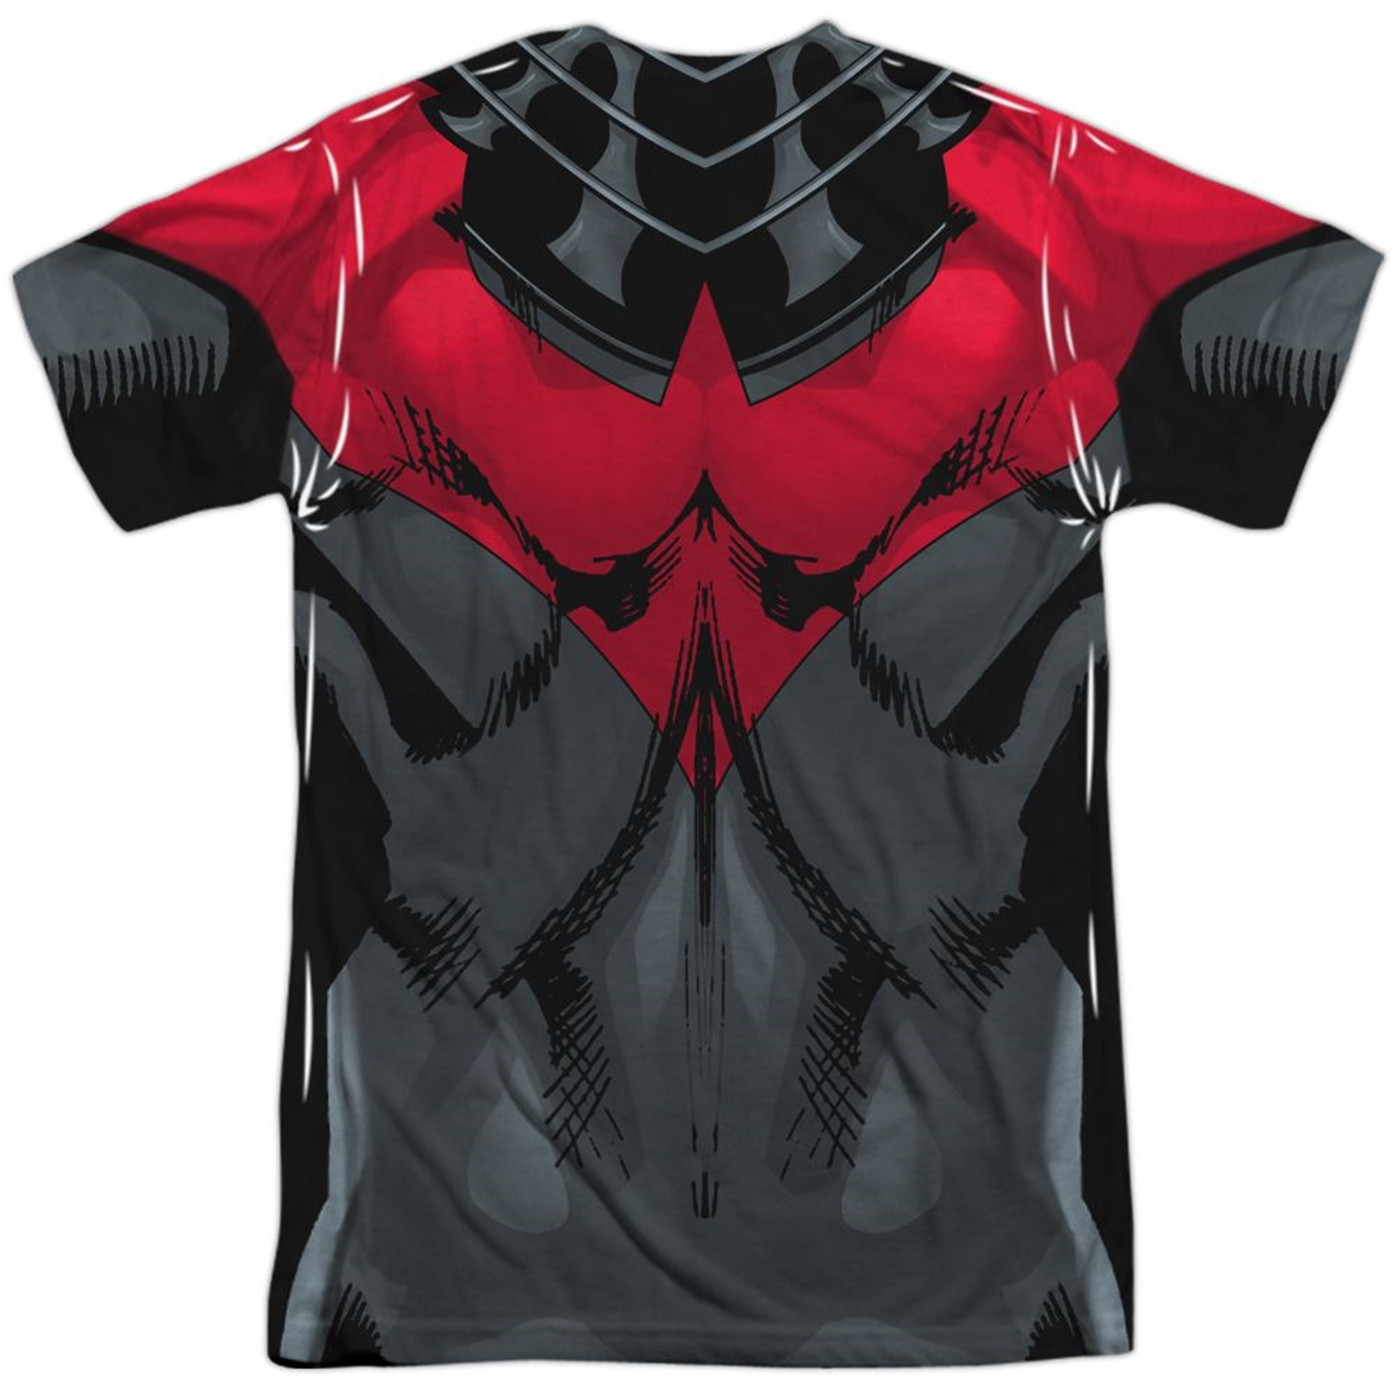 Nightwing 52 Costume Sublimated Men's T-Shirt